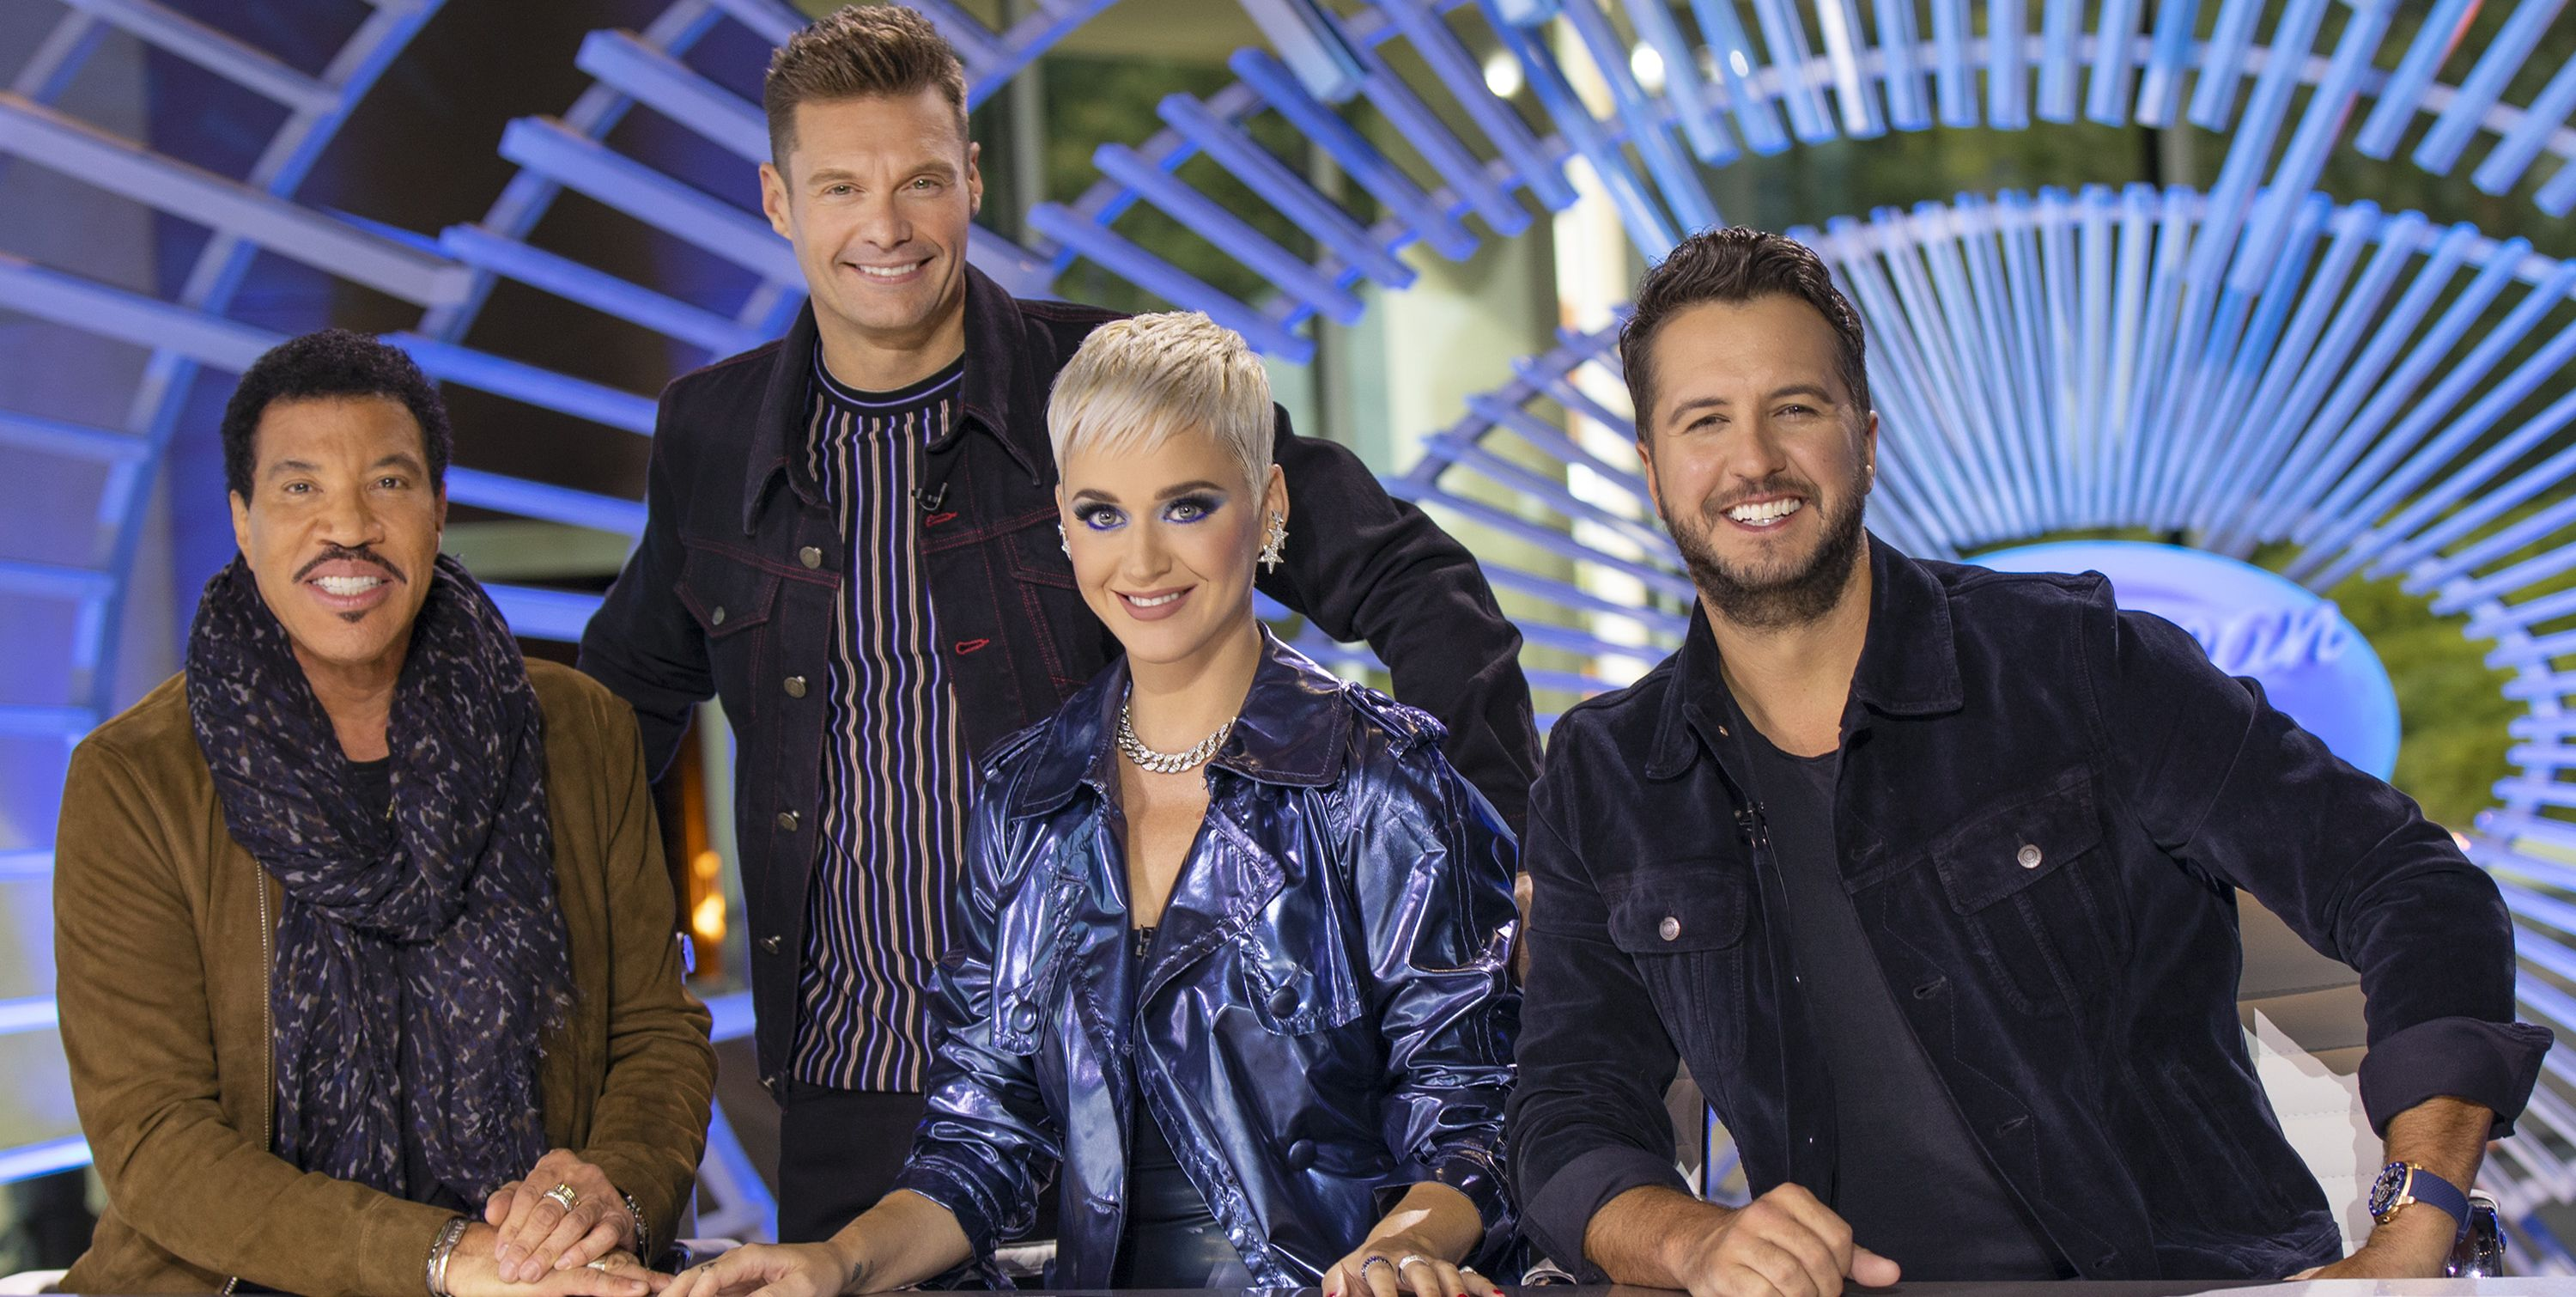 Set Your DVR! 'American Idol' Is Coming Back to Television Soon